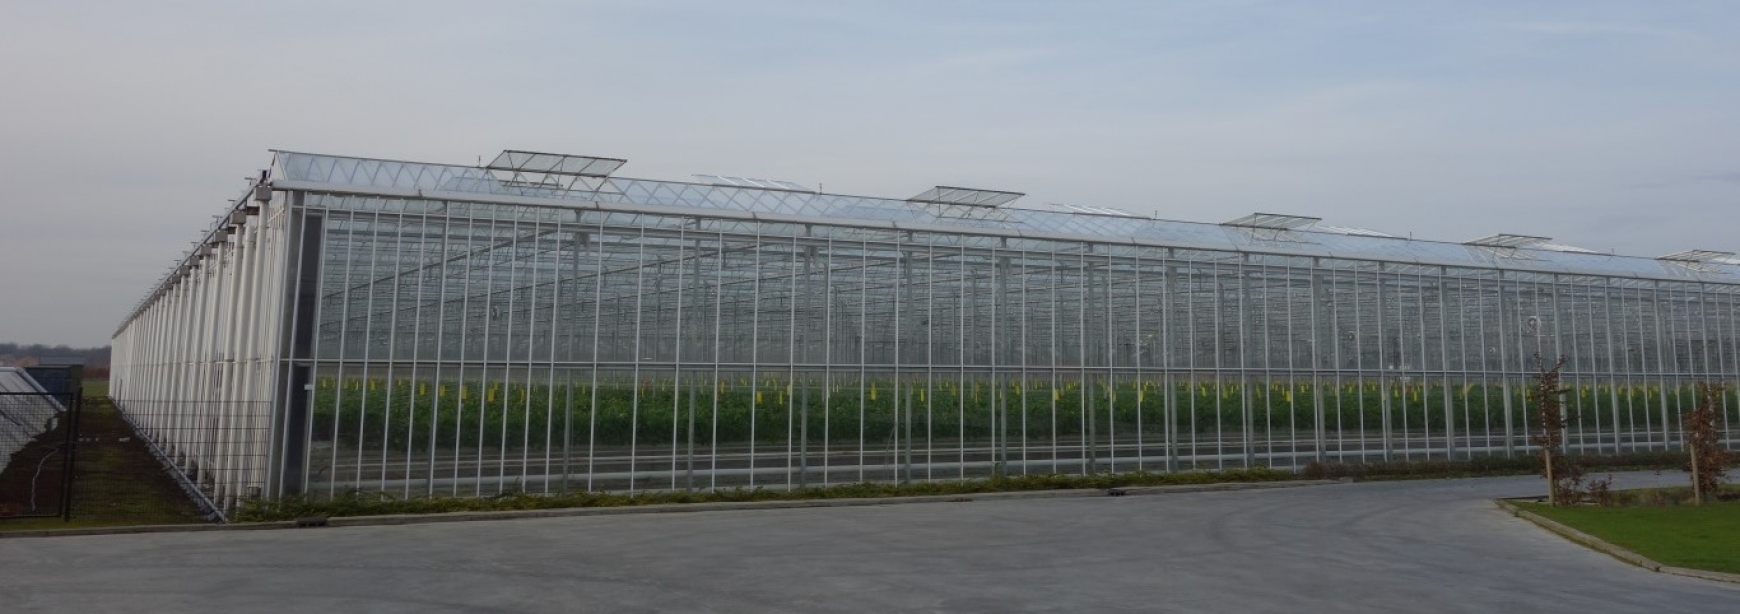 A greenhouse with its roof vents open